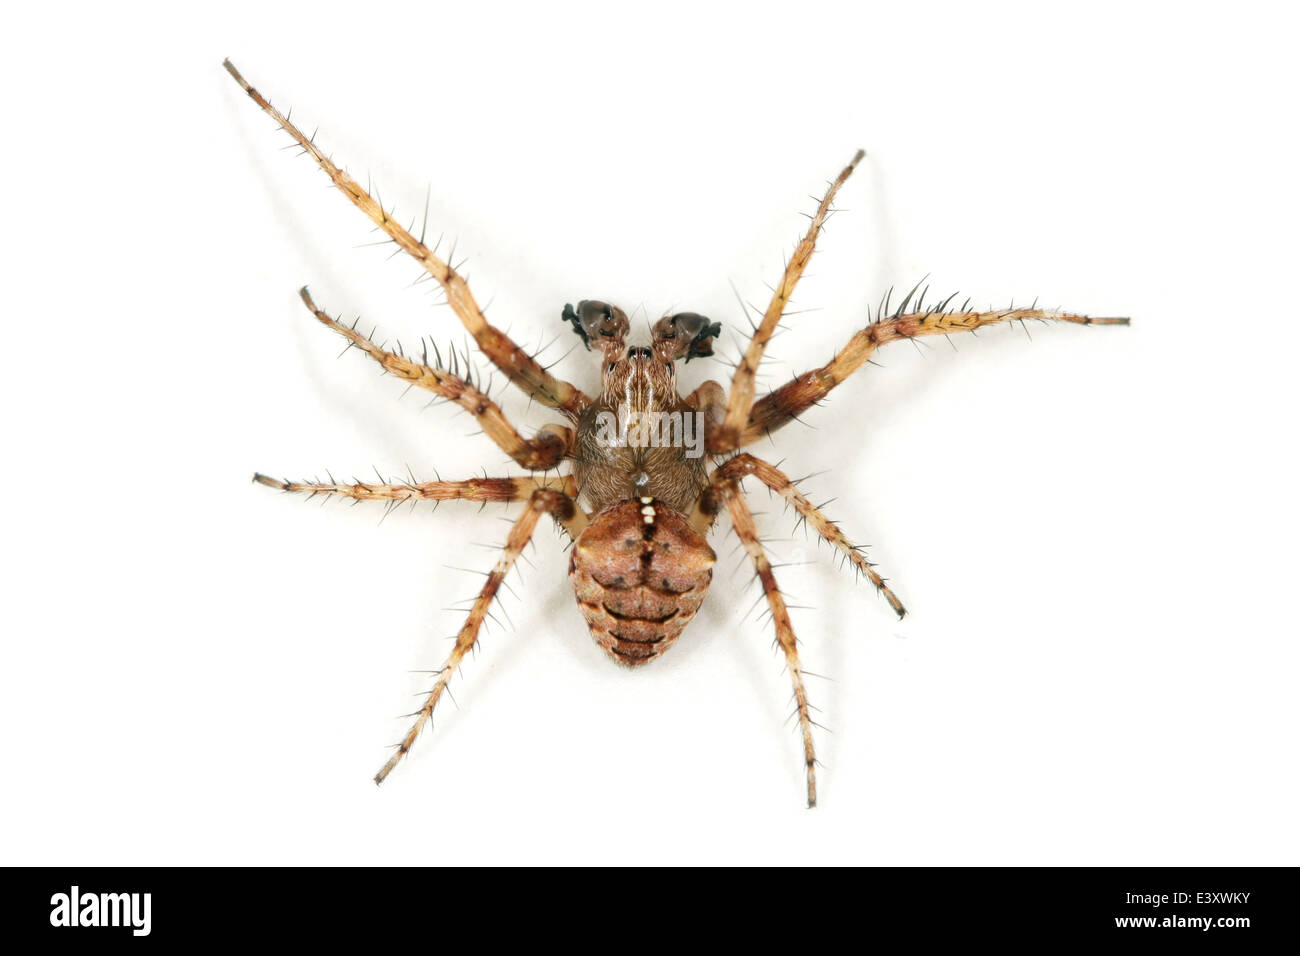 Male Gibbaranea omoeda spider, part of the family Araneidae -  orbweavers. - Stock Image